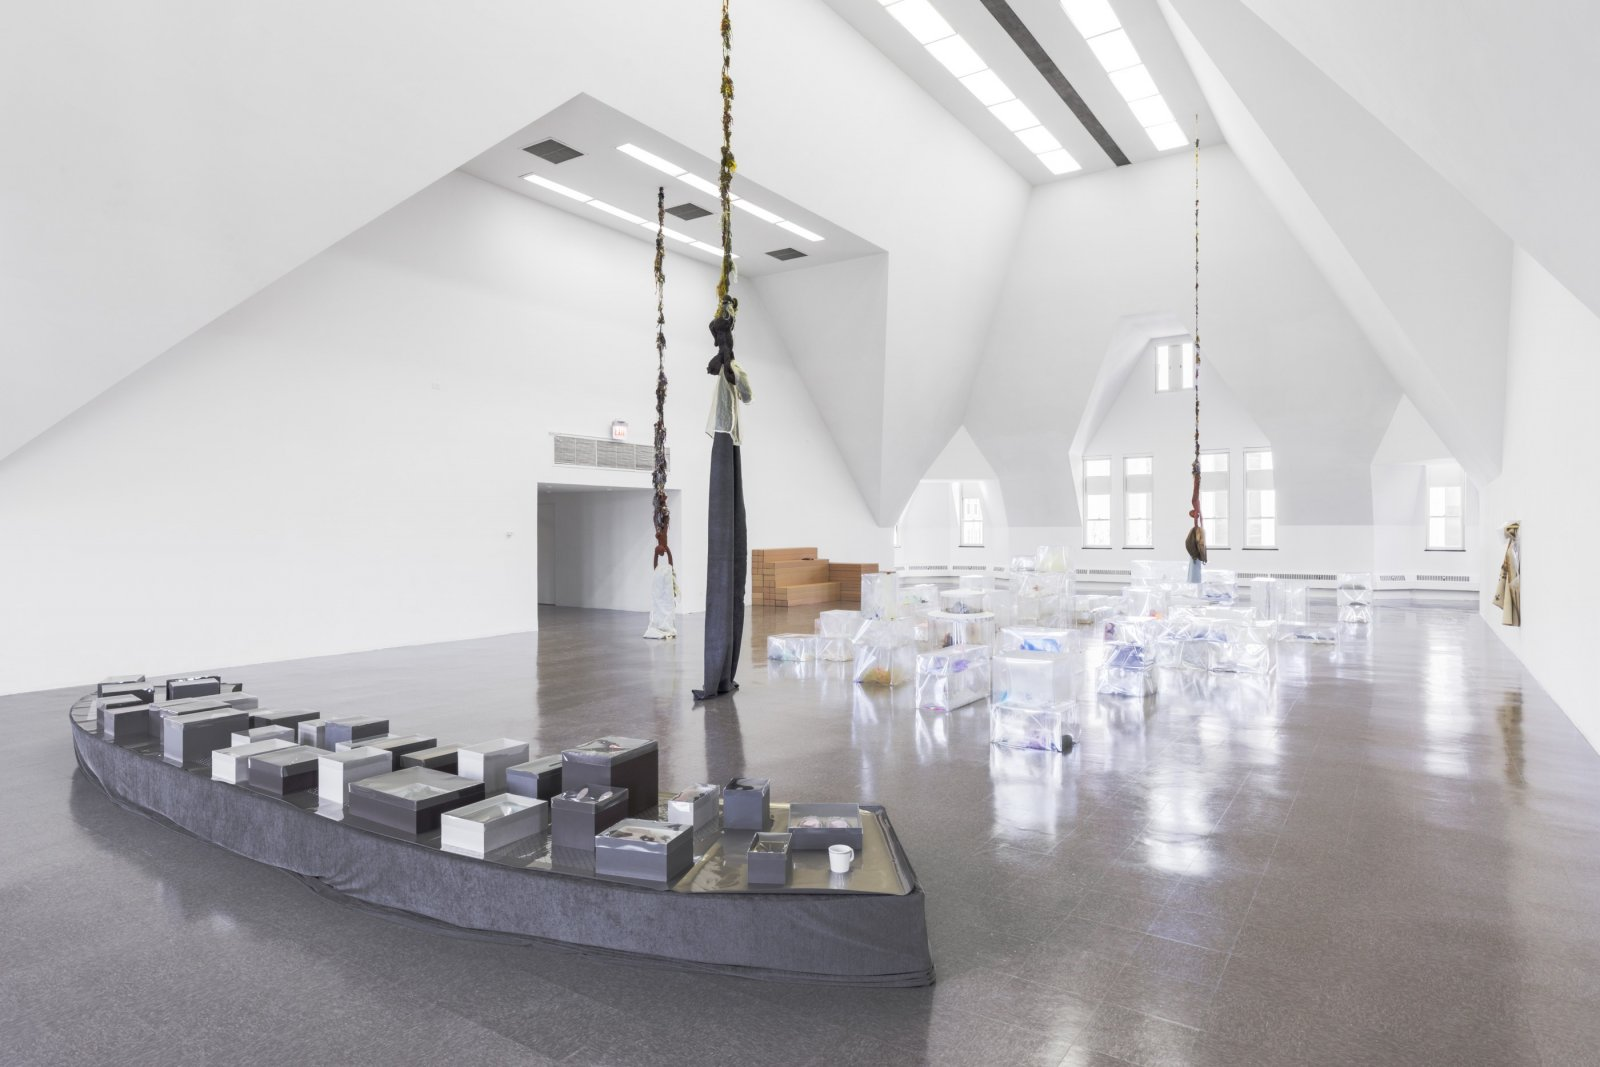 Liz Magor, installation view, BLOWOUT, The Renaissance Society, Chicago, USA, 2019 by Liz Magor